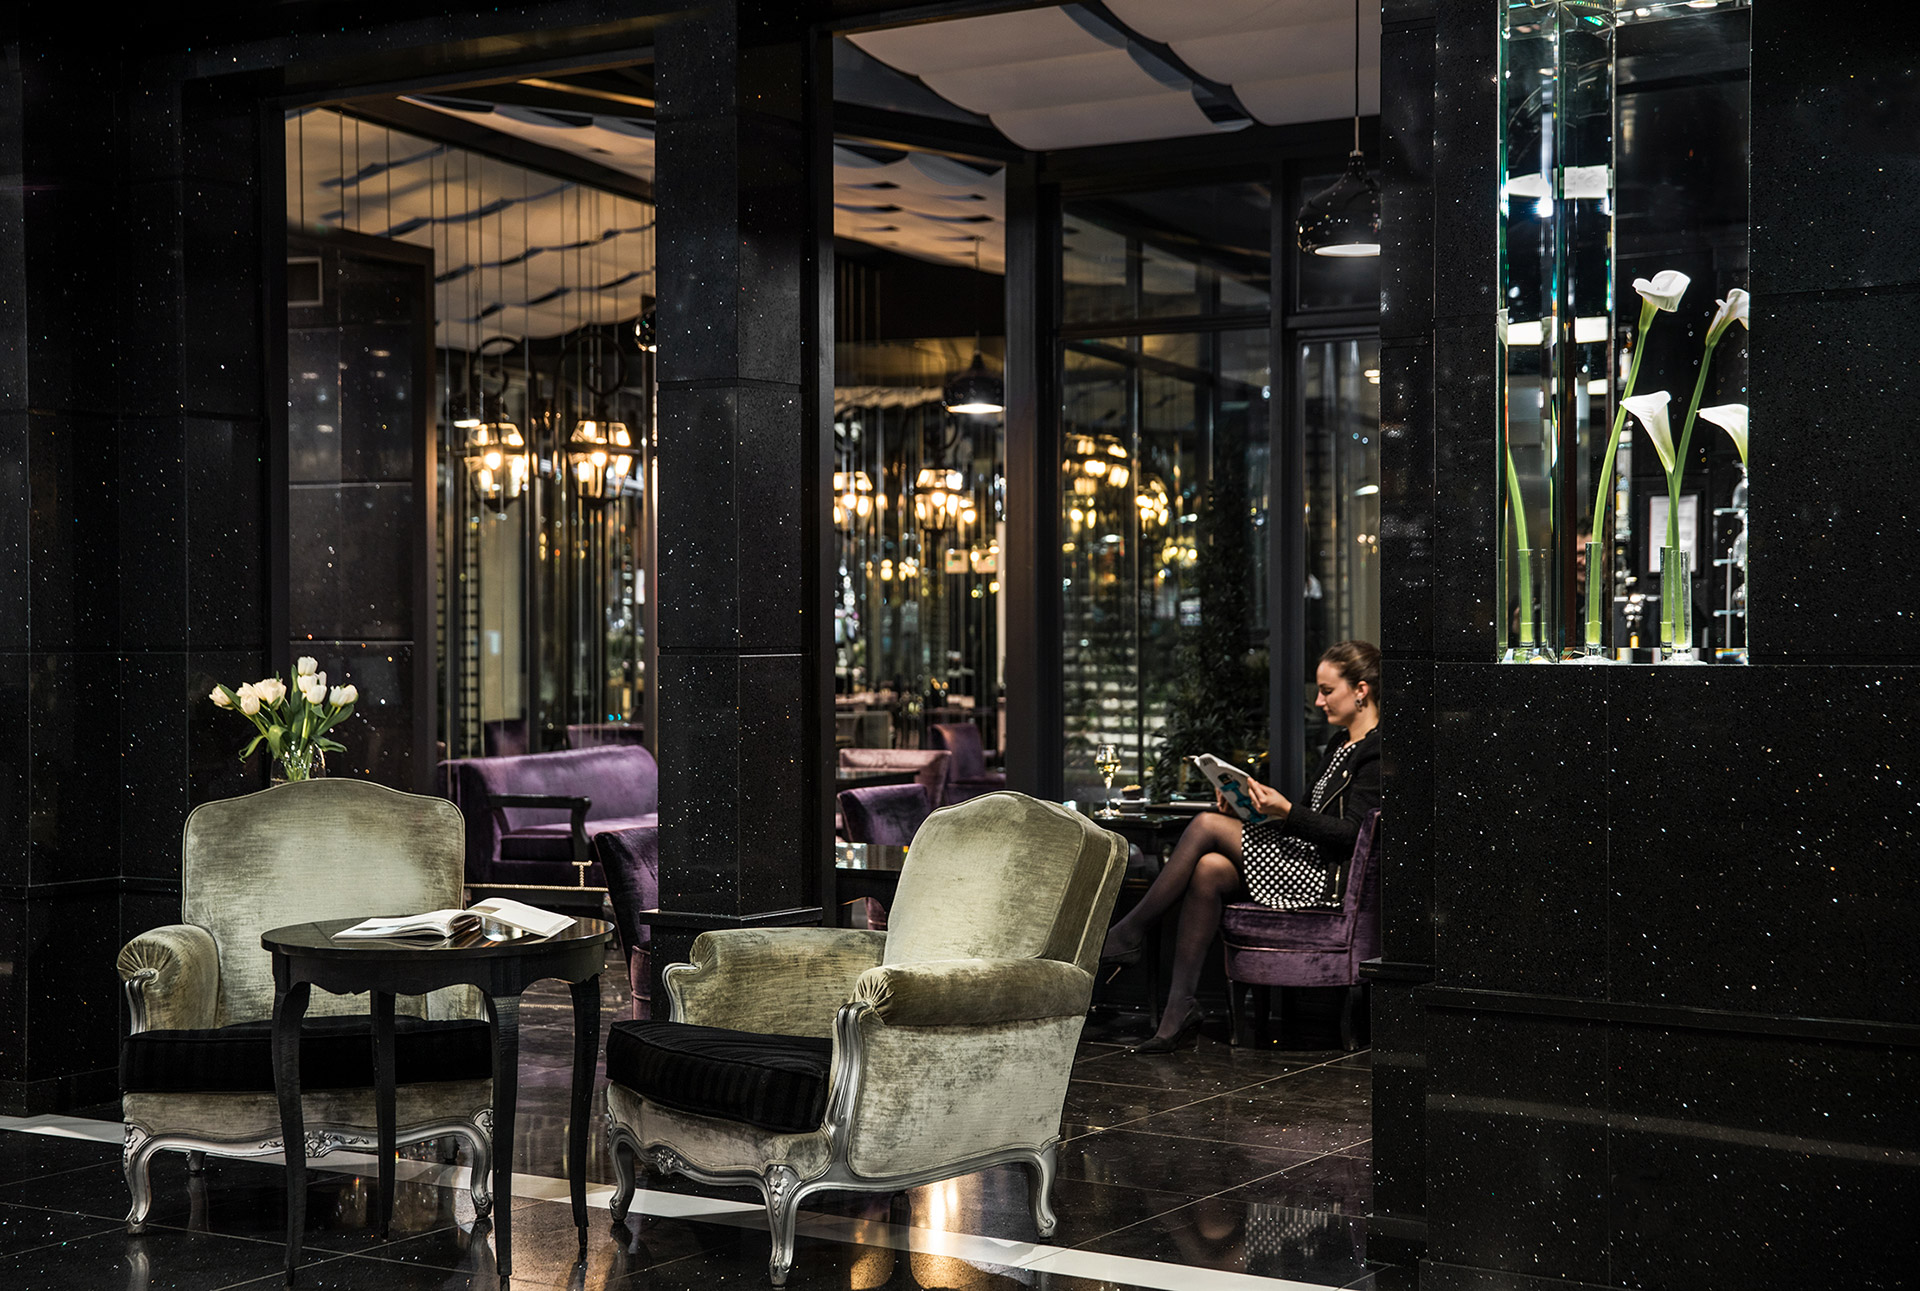 Maison Albar Hotels Le Diamond lobby luxury hotel